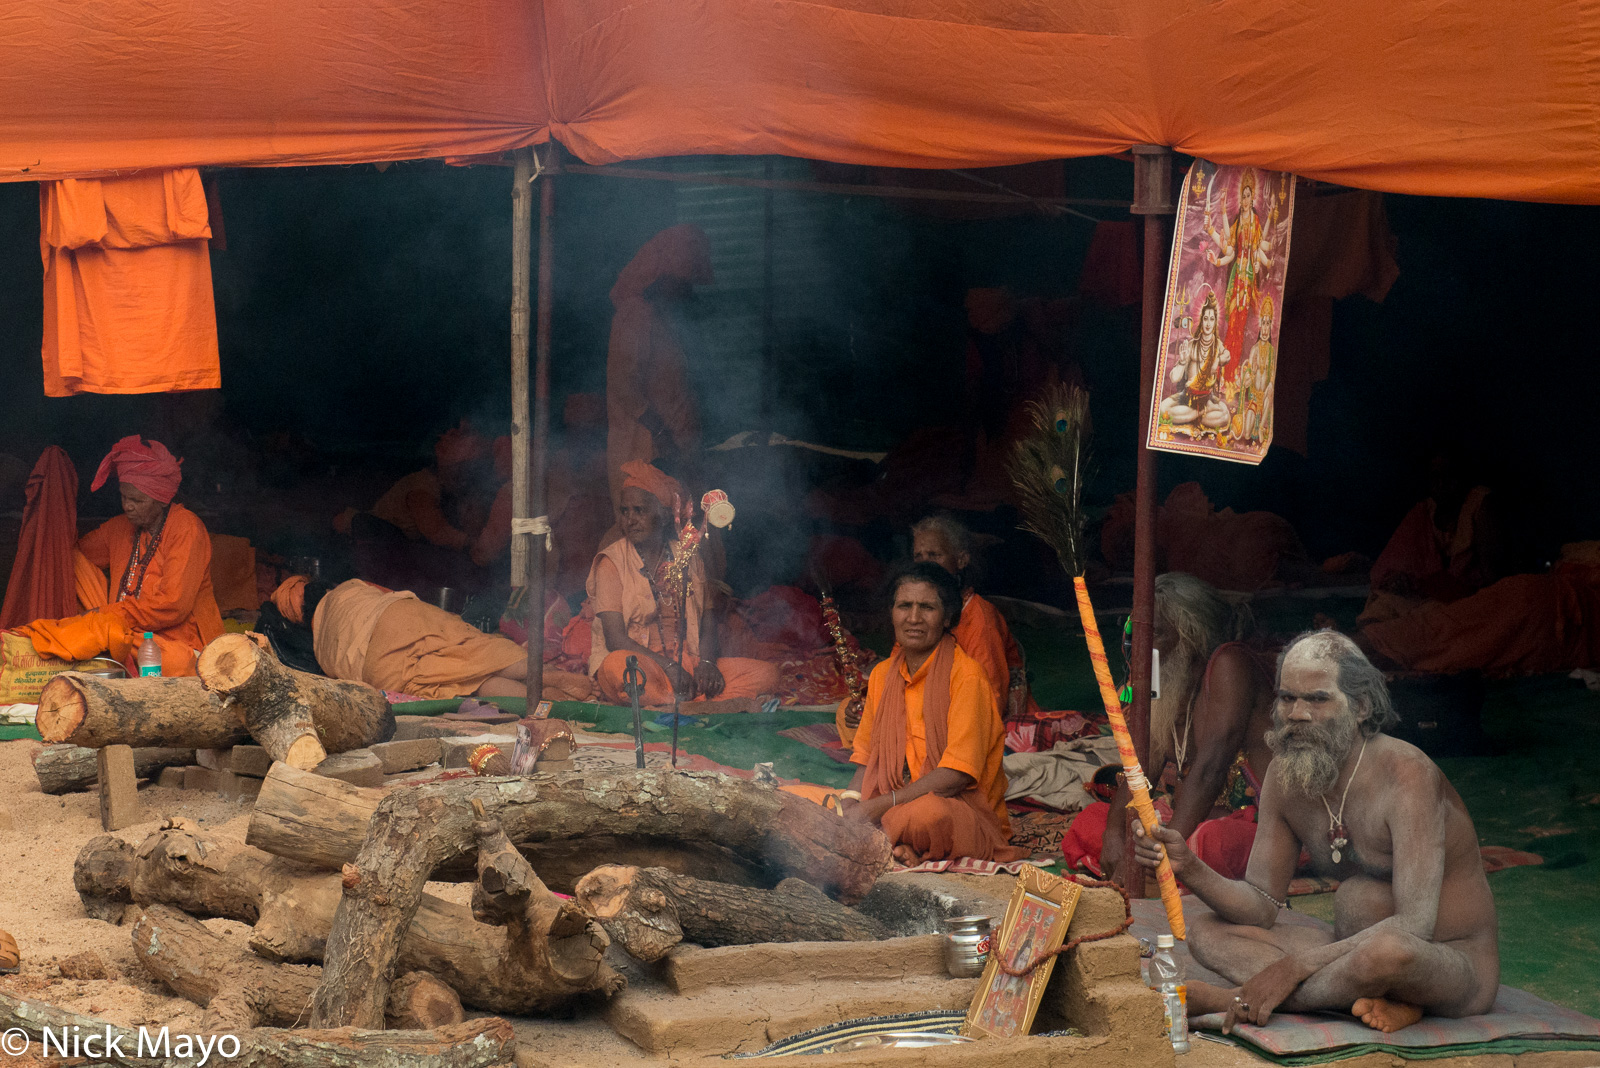 Chhattisgarh, Festival, India, Sadhu, Sadhvi, photo